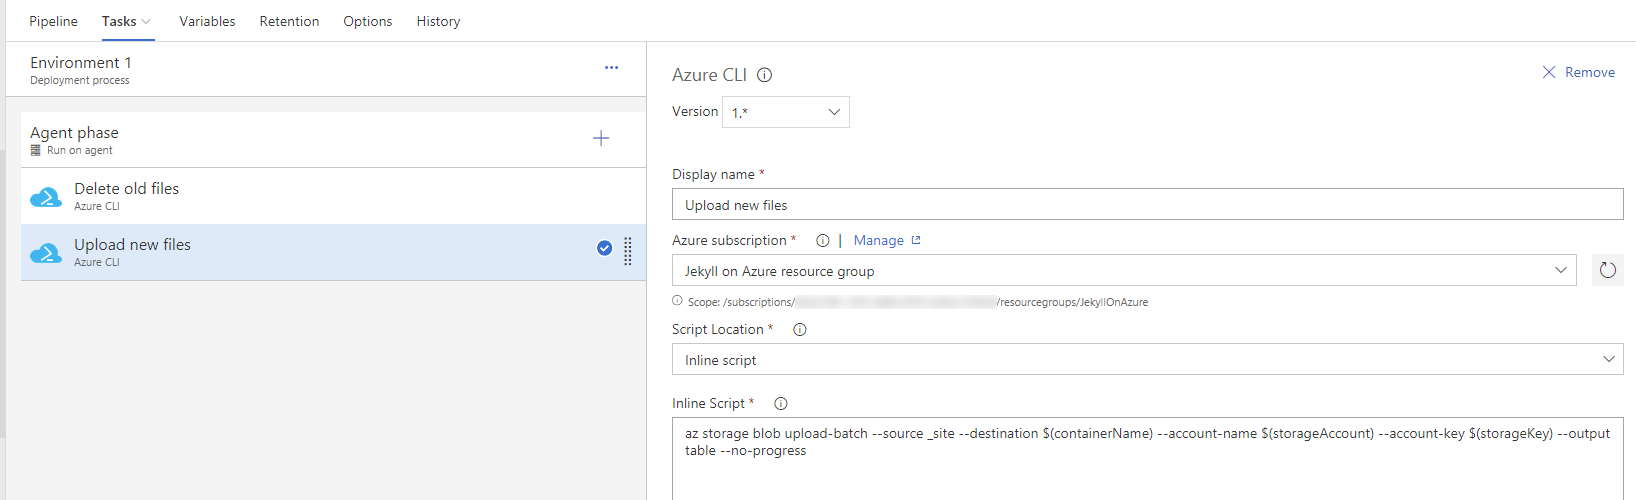 Upload build artifacts to Azure blob storage from VSTS release definition using Azure CLI